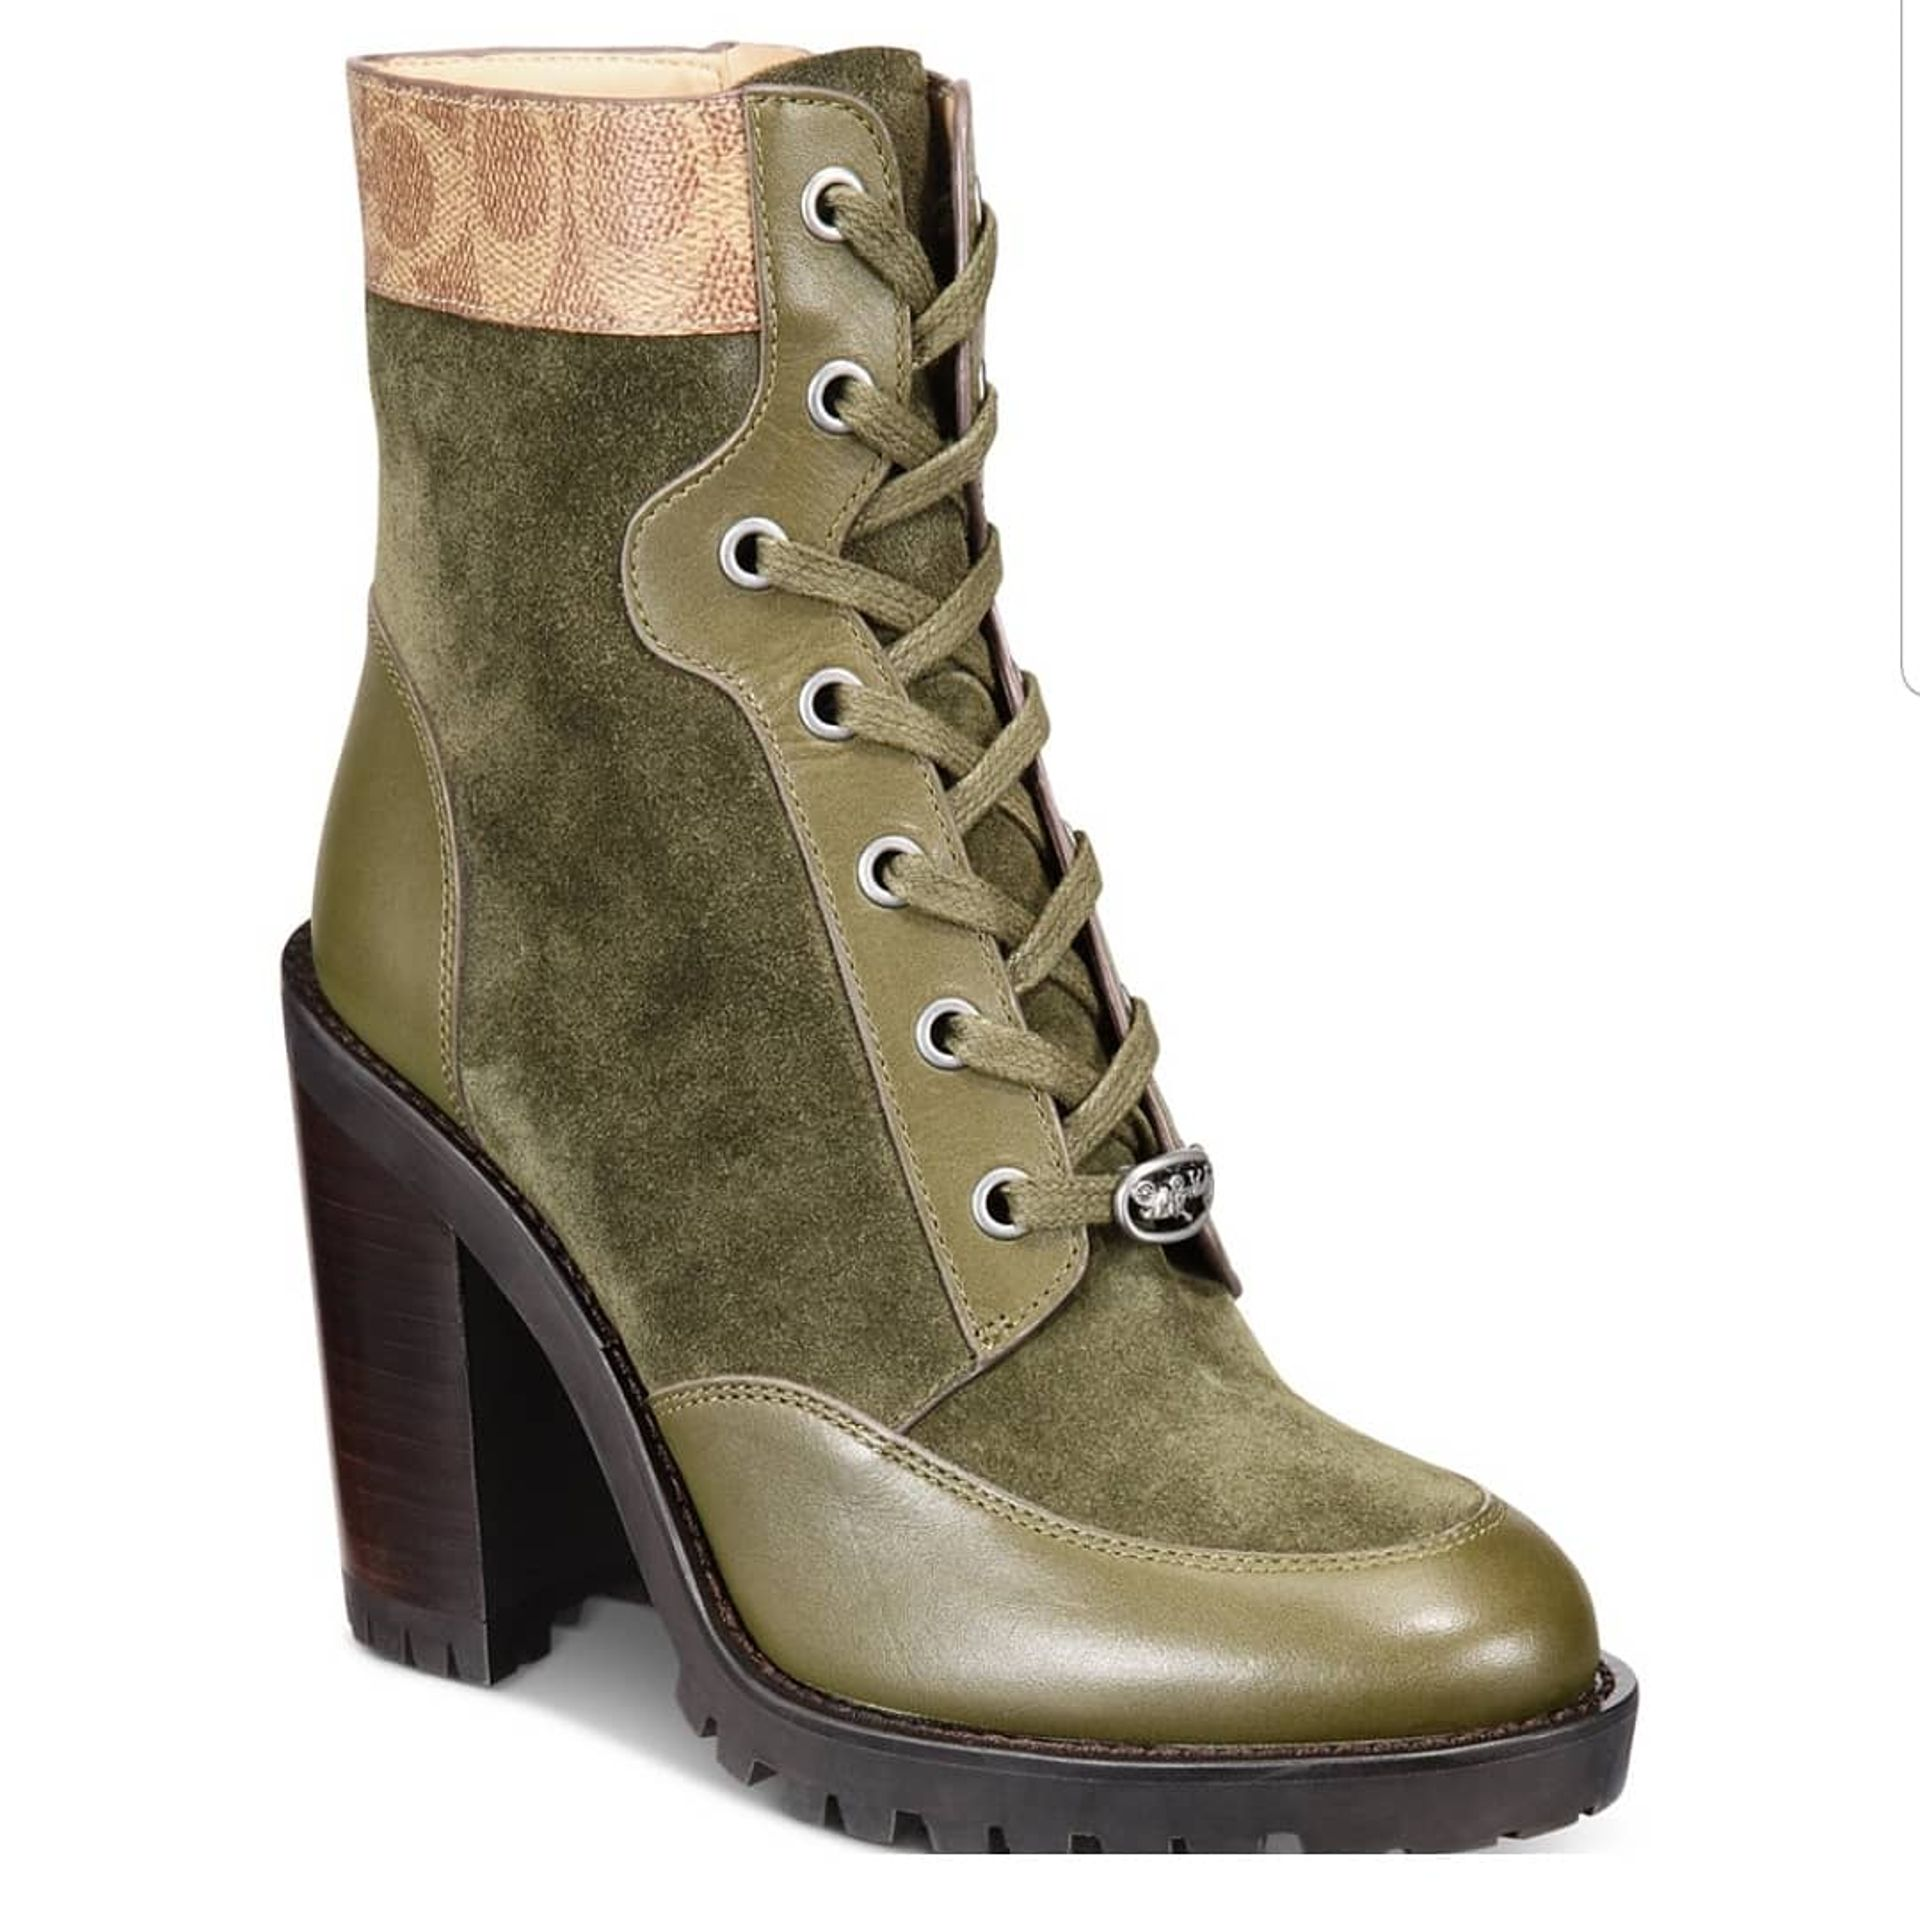 VINTAGE OLIVE GREEN COACH BOOTS - Macys